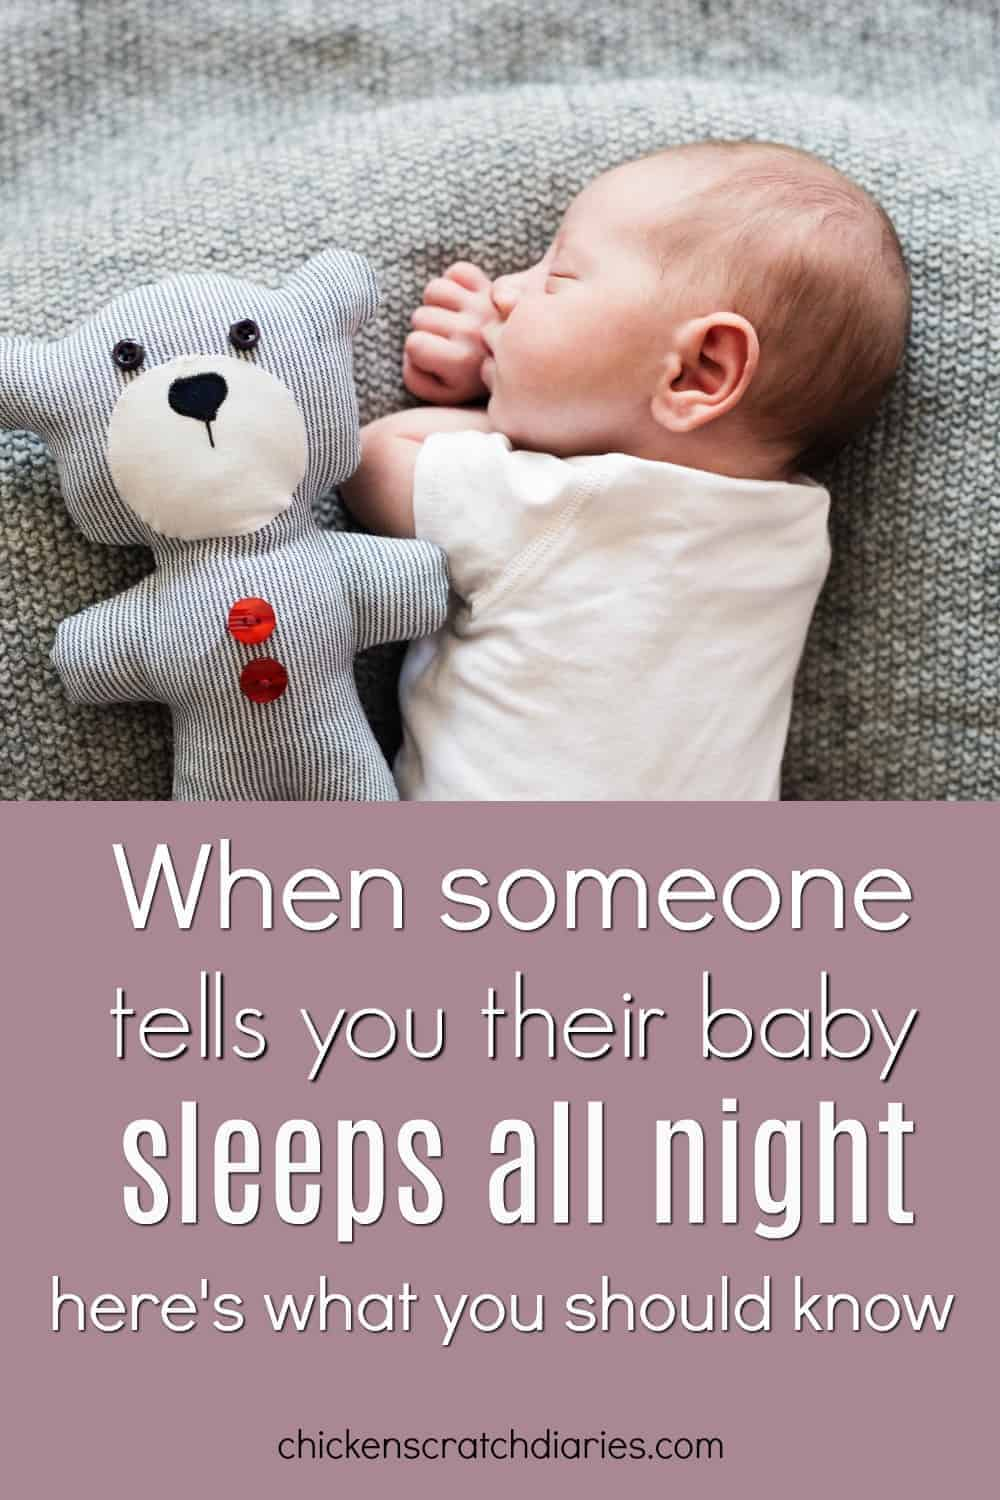 Baby sleep : it's time to crack the code. Here's what you need to know. #Parenting #MomHumor #MomLife #Babies #BabySleep